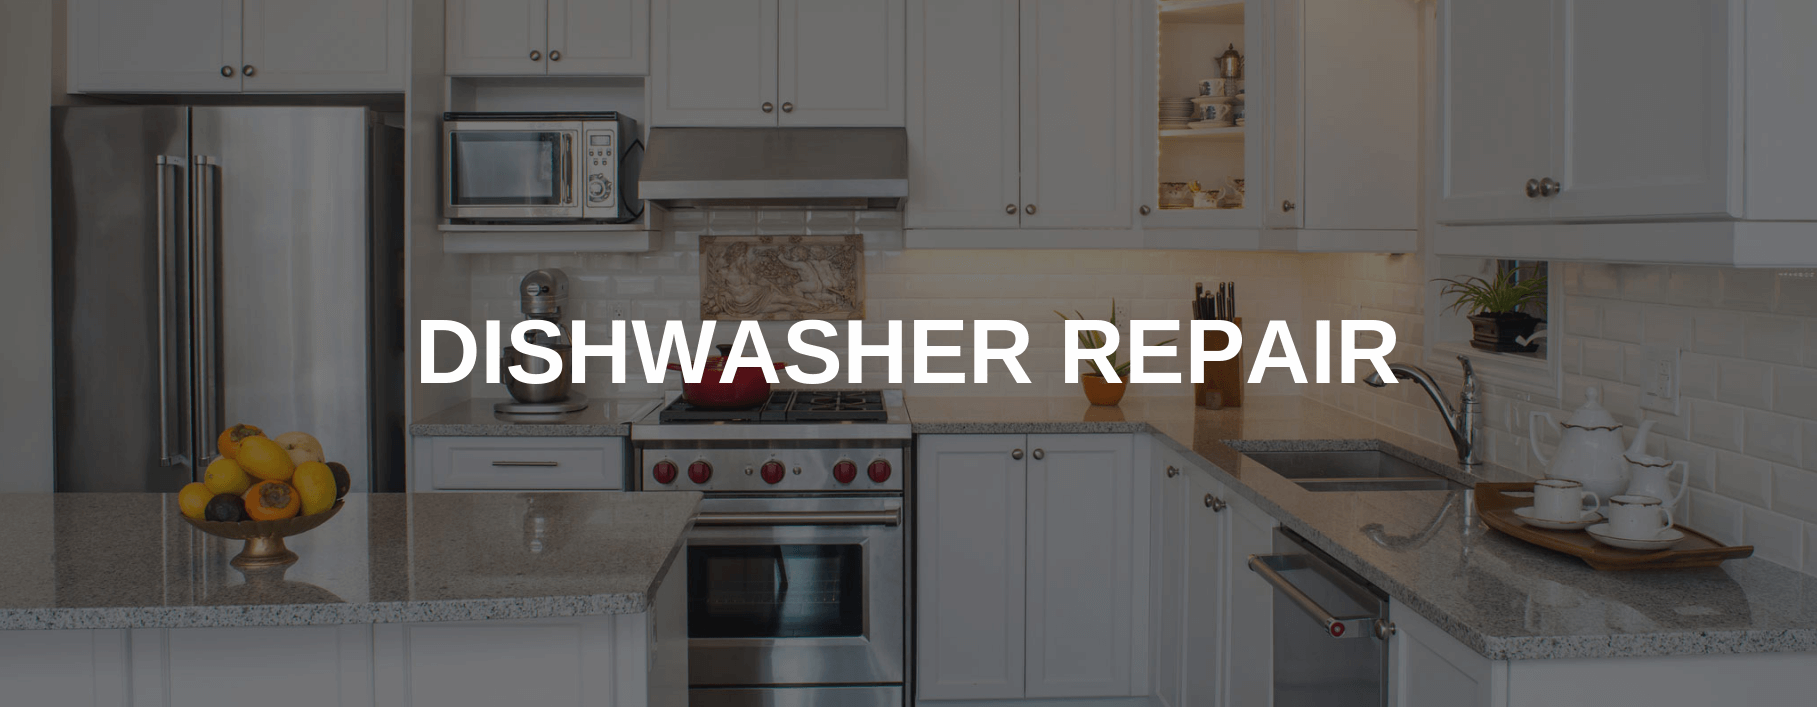 dishwasher repair hayward